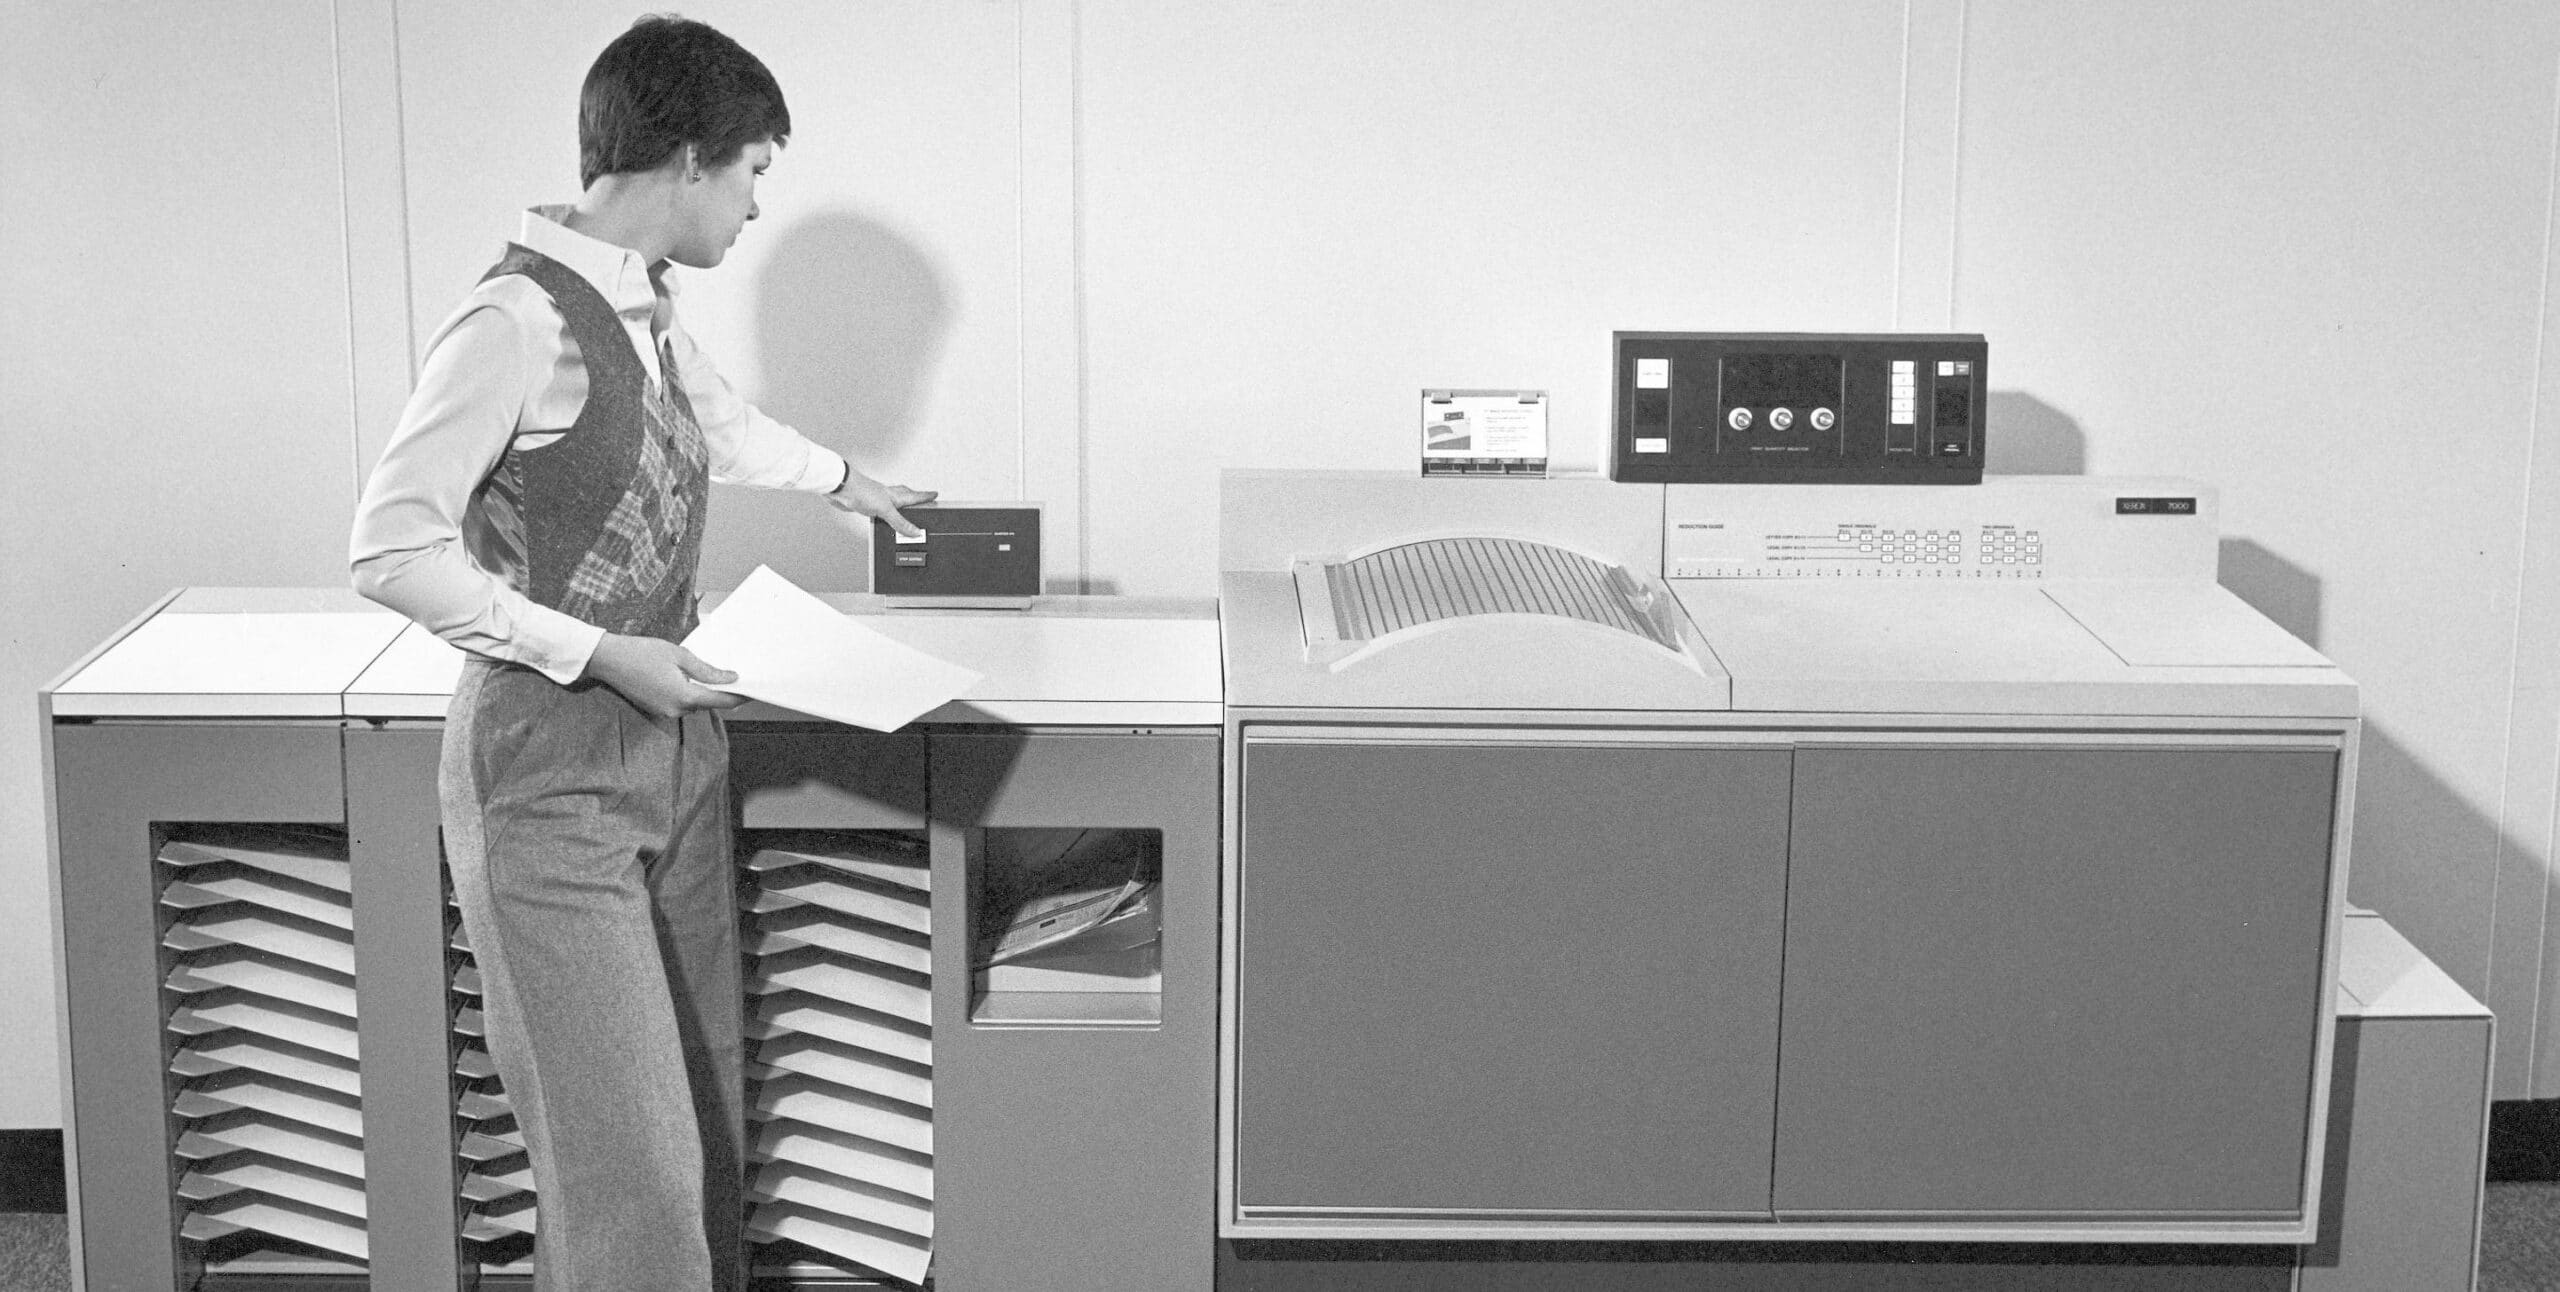 The missed opportunity in office printers and copiers